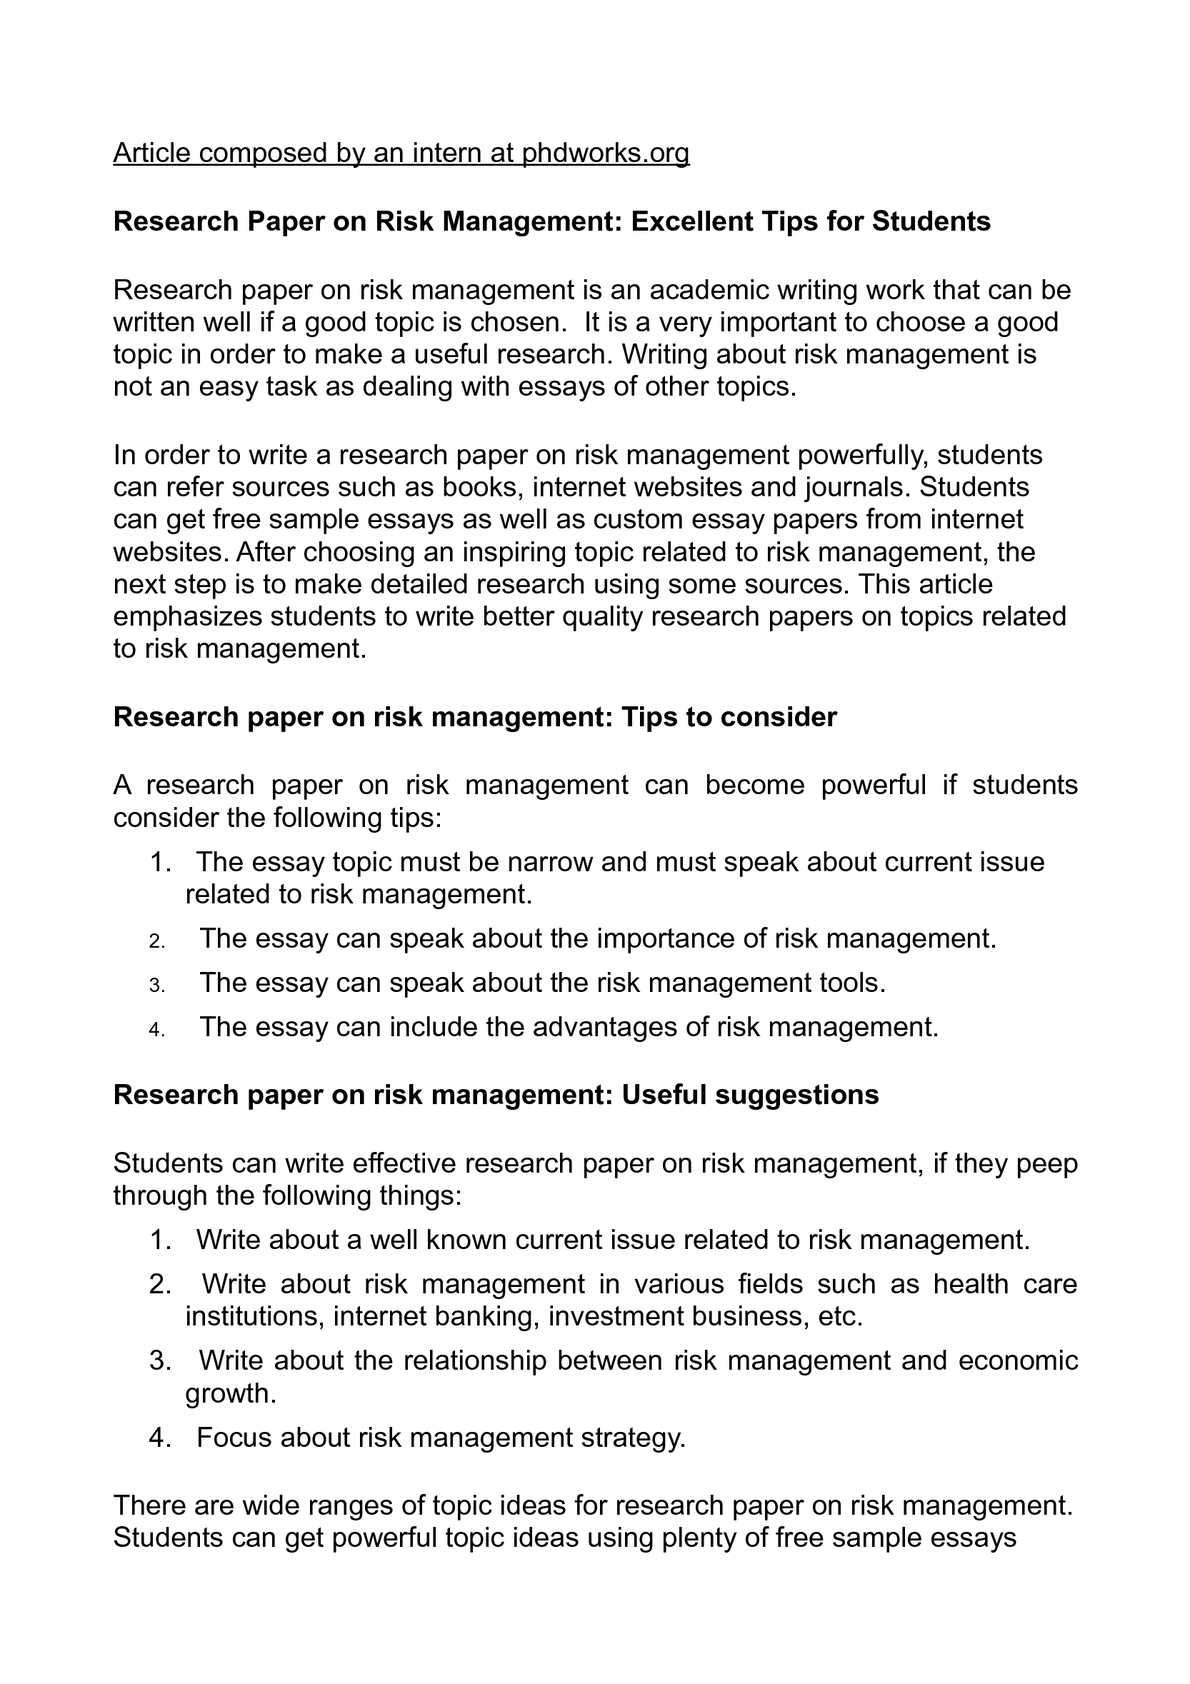 Calamo  Research Paper On Risk Management Excellent Tips For Students  Help Writing Essay Paper also Scientific Article Writing Services  Service Assignment